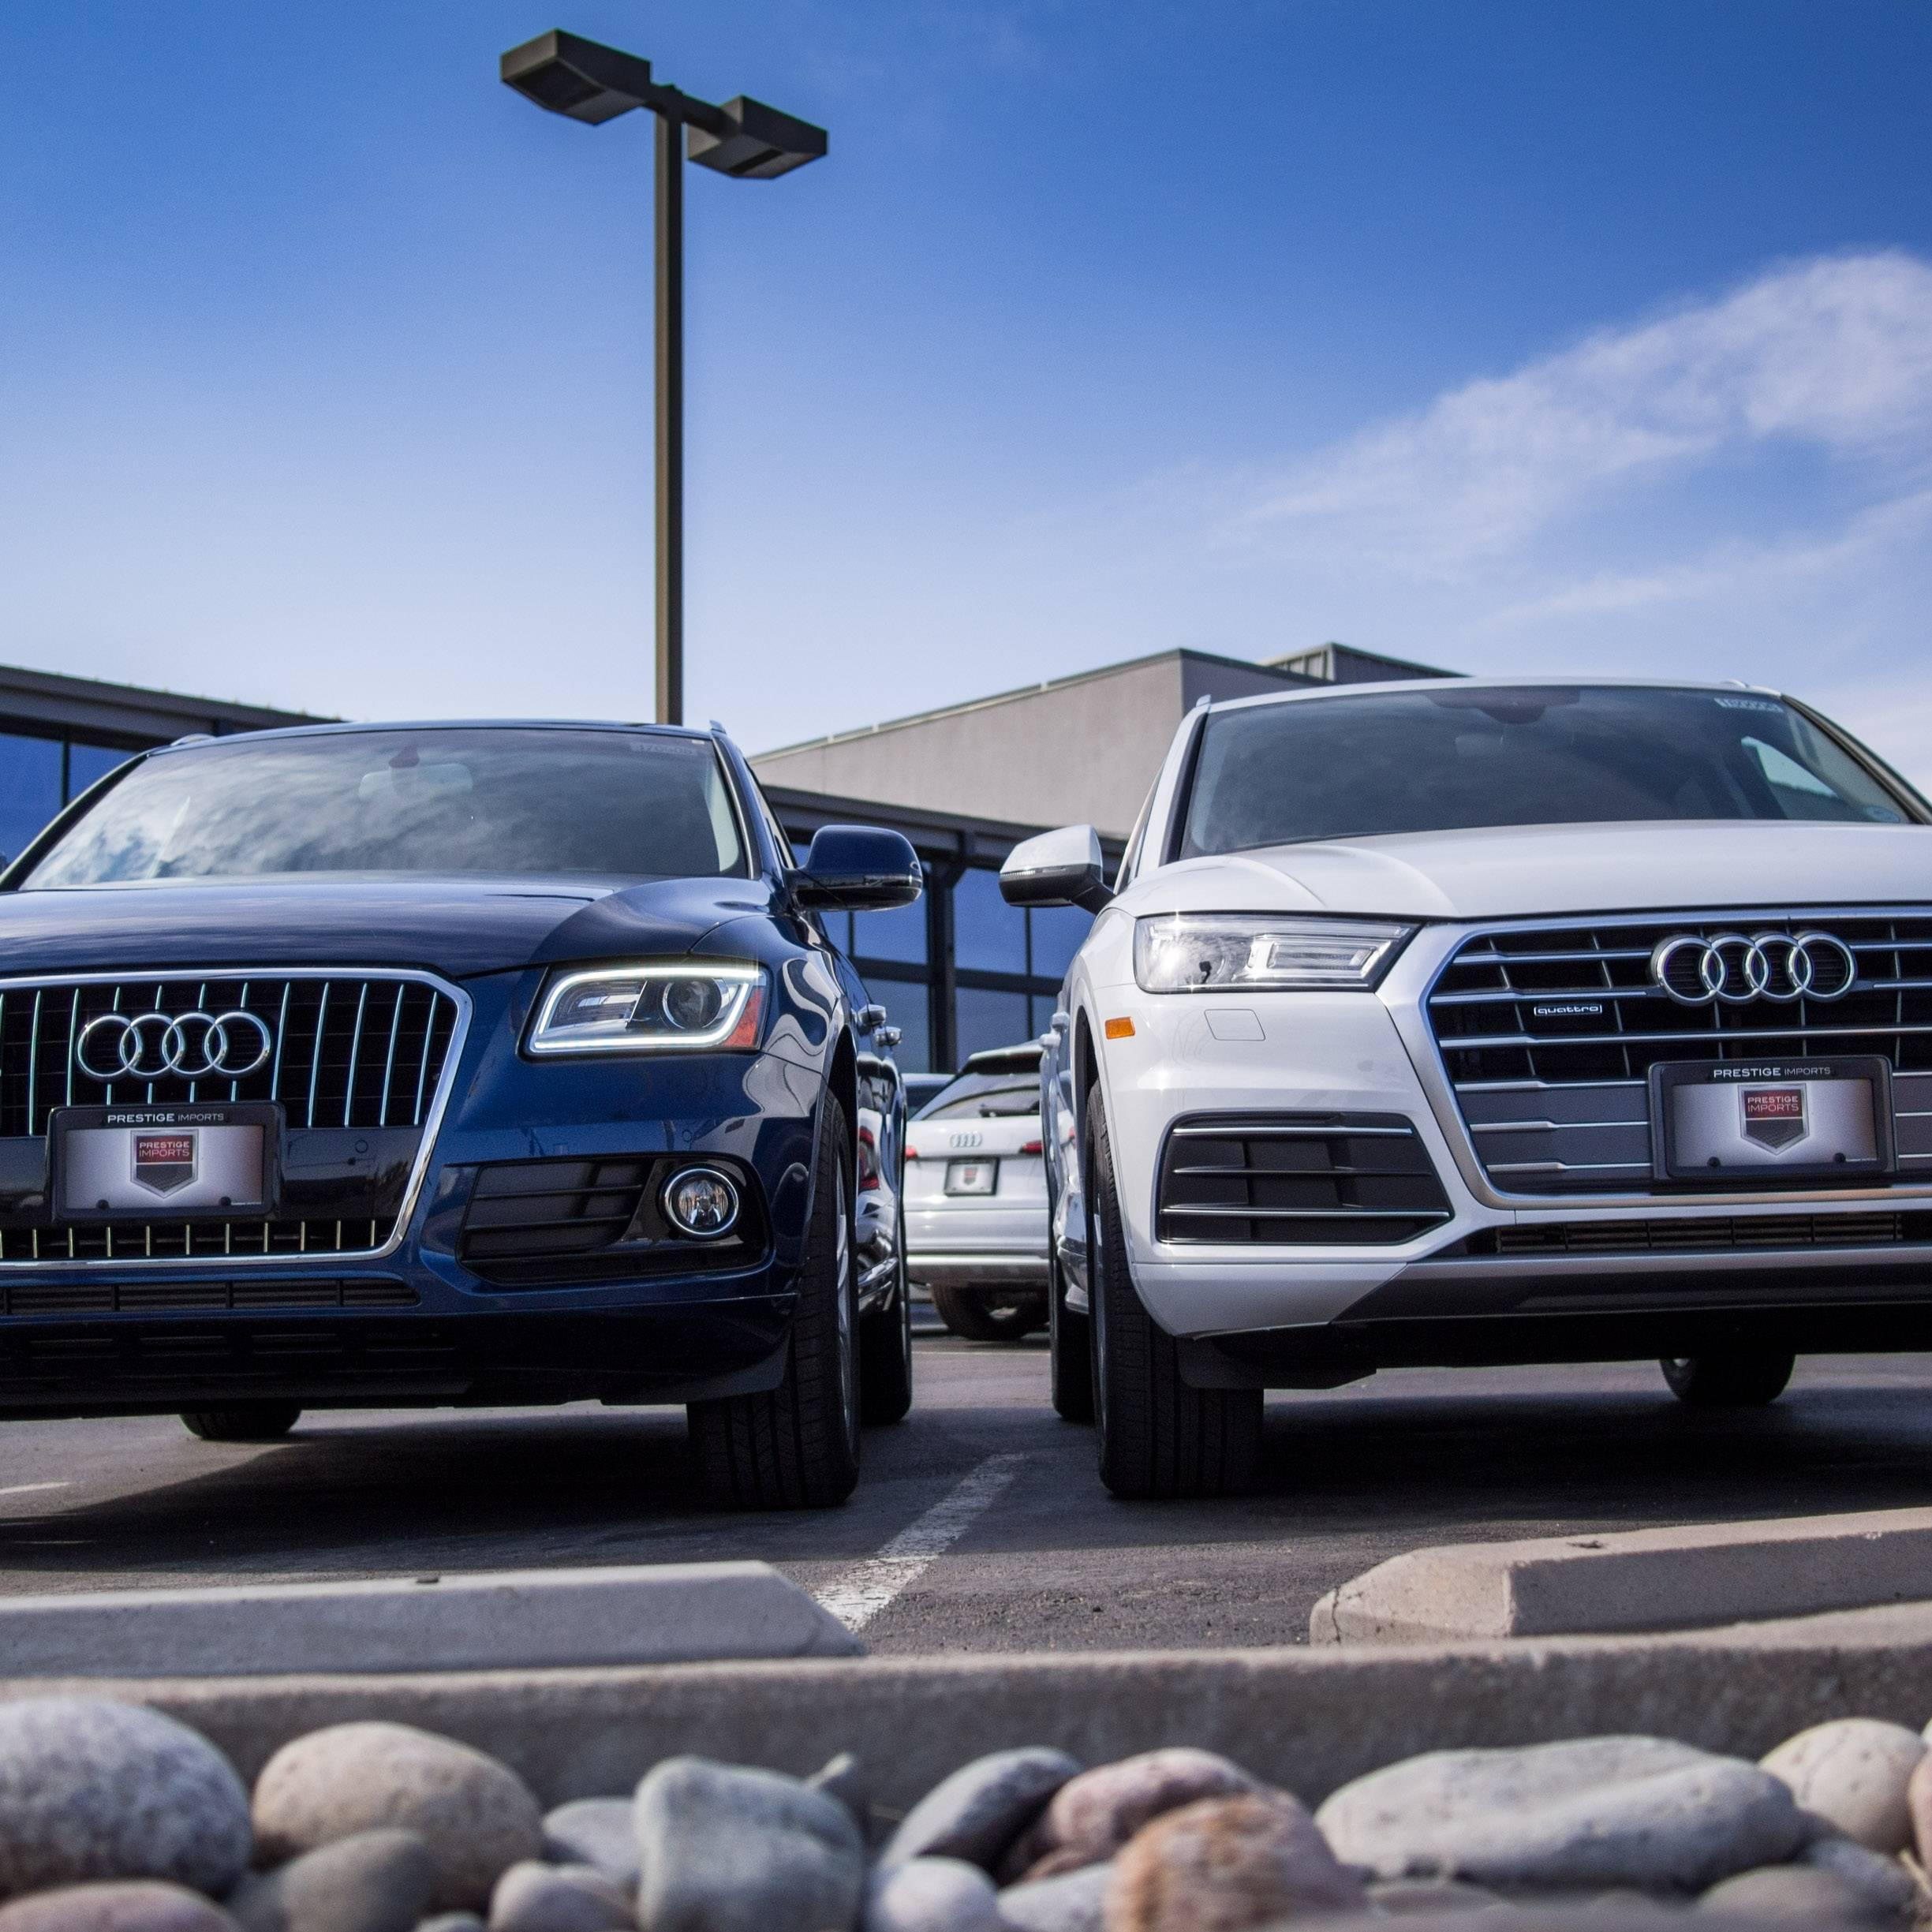 2018 audi prestige. perfect audi 2017 audi q5 and 2018 on display at prestige imports in denver co intended audi prestige d